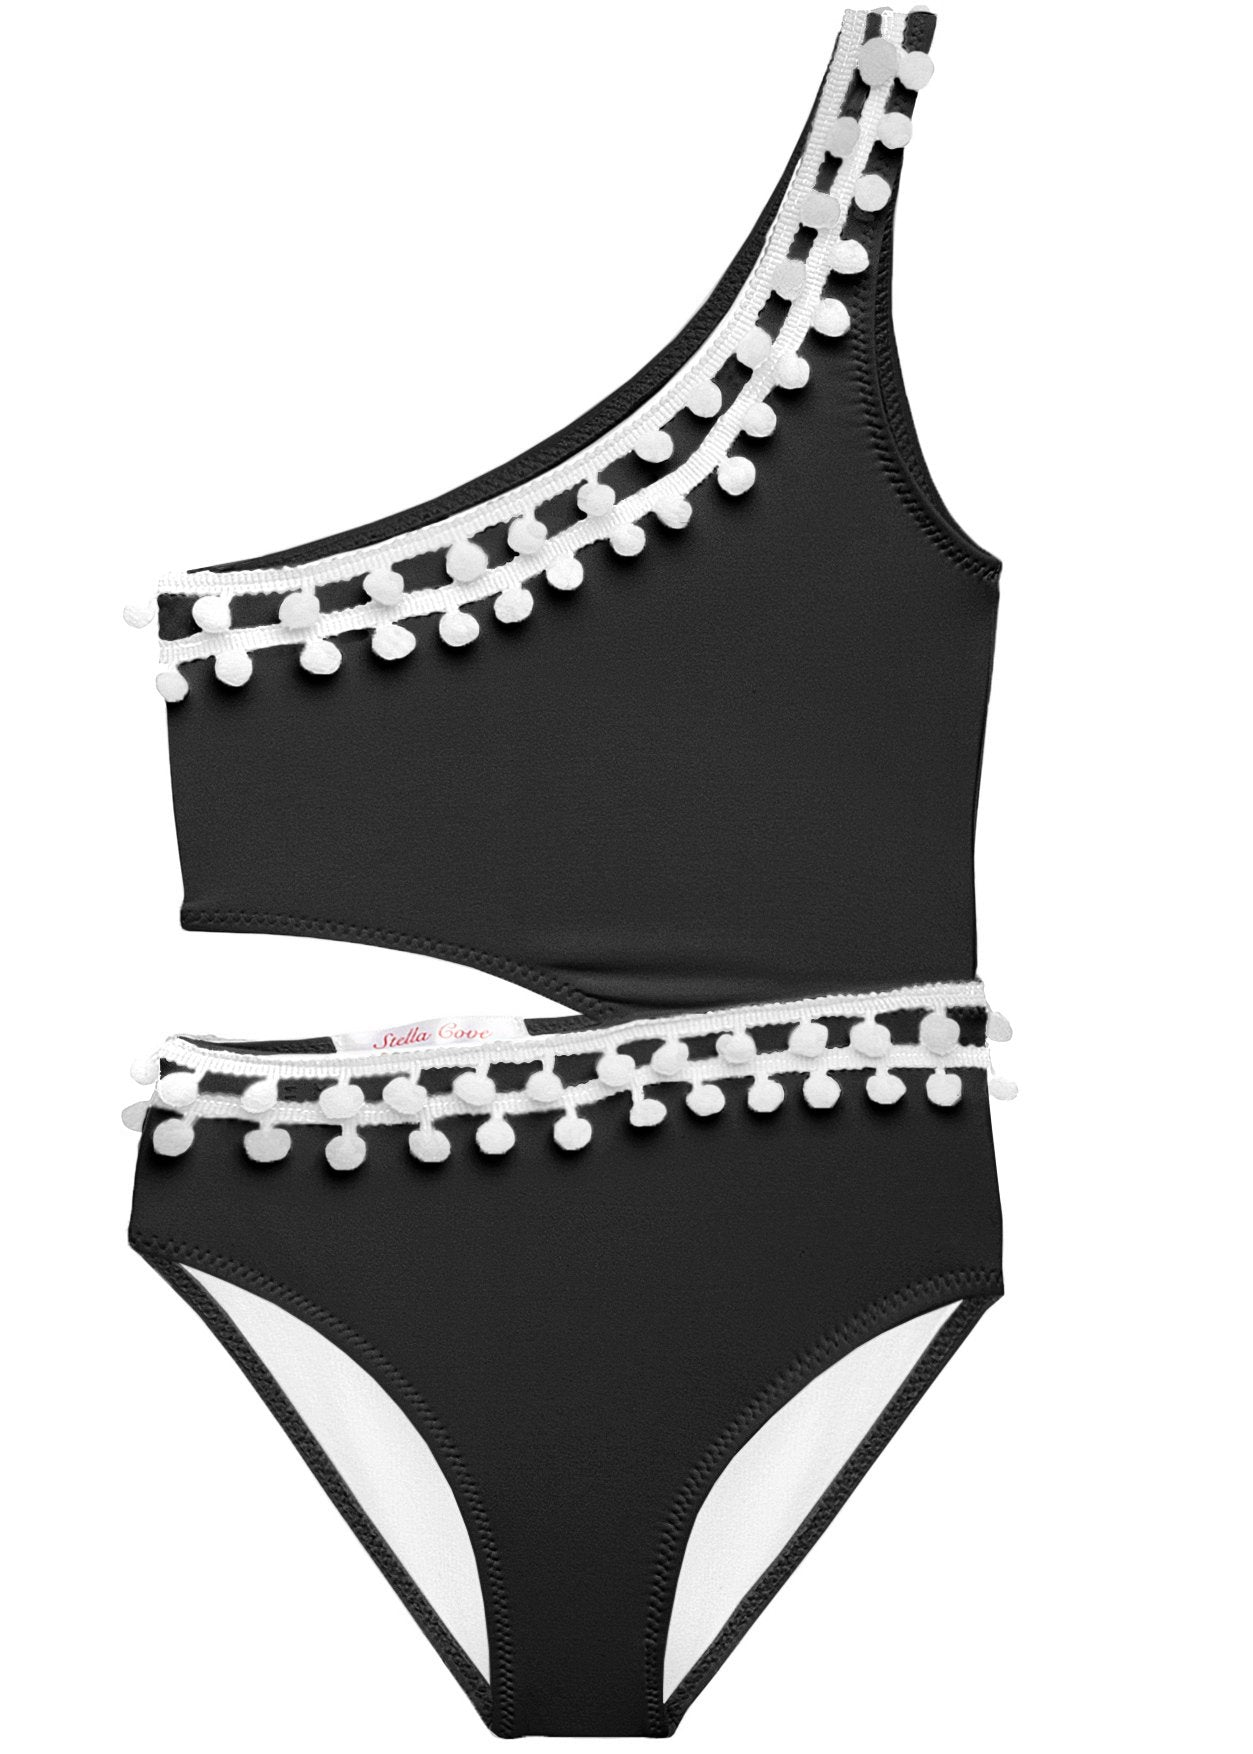 Black Side Cut Swimsuit with White Pom Poms